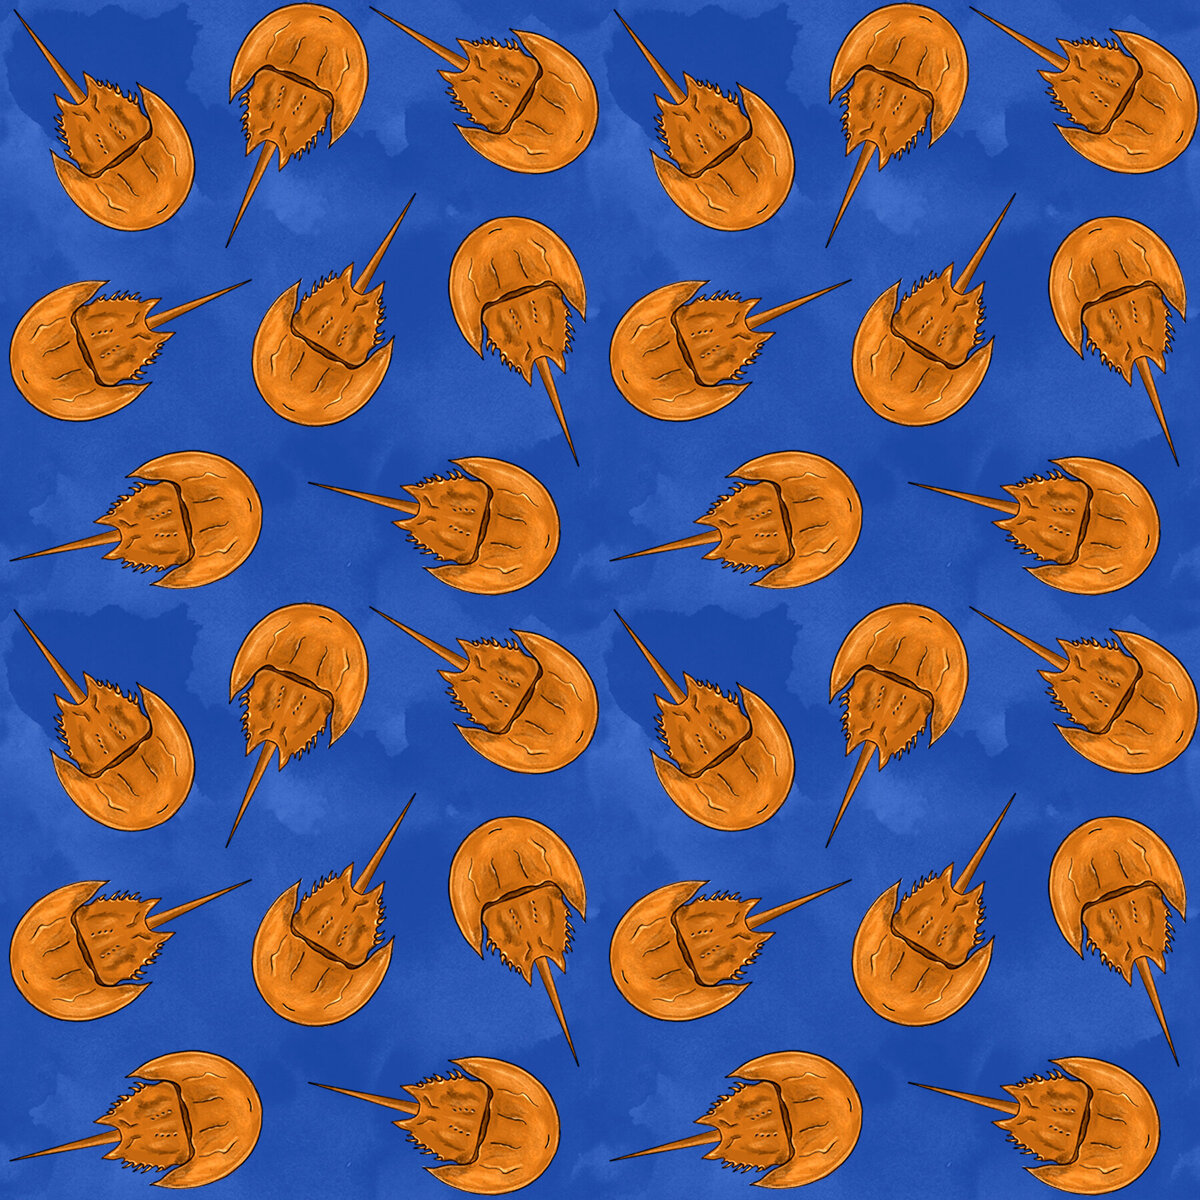 Horseshoe crab FABRIC PATTERN